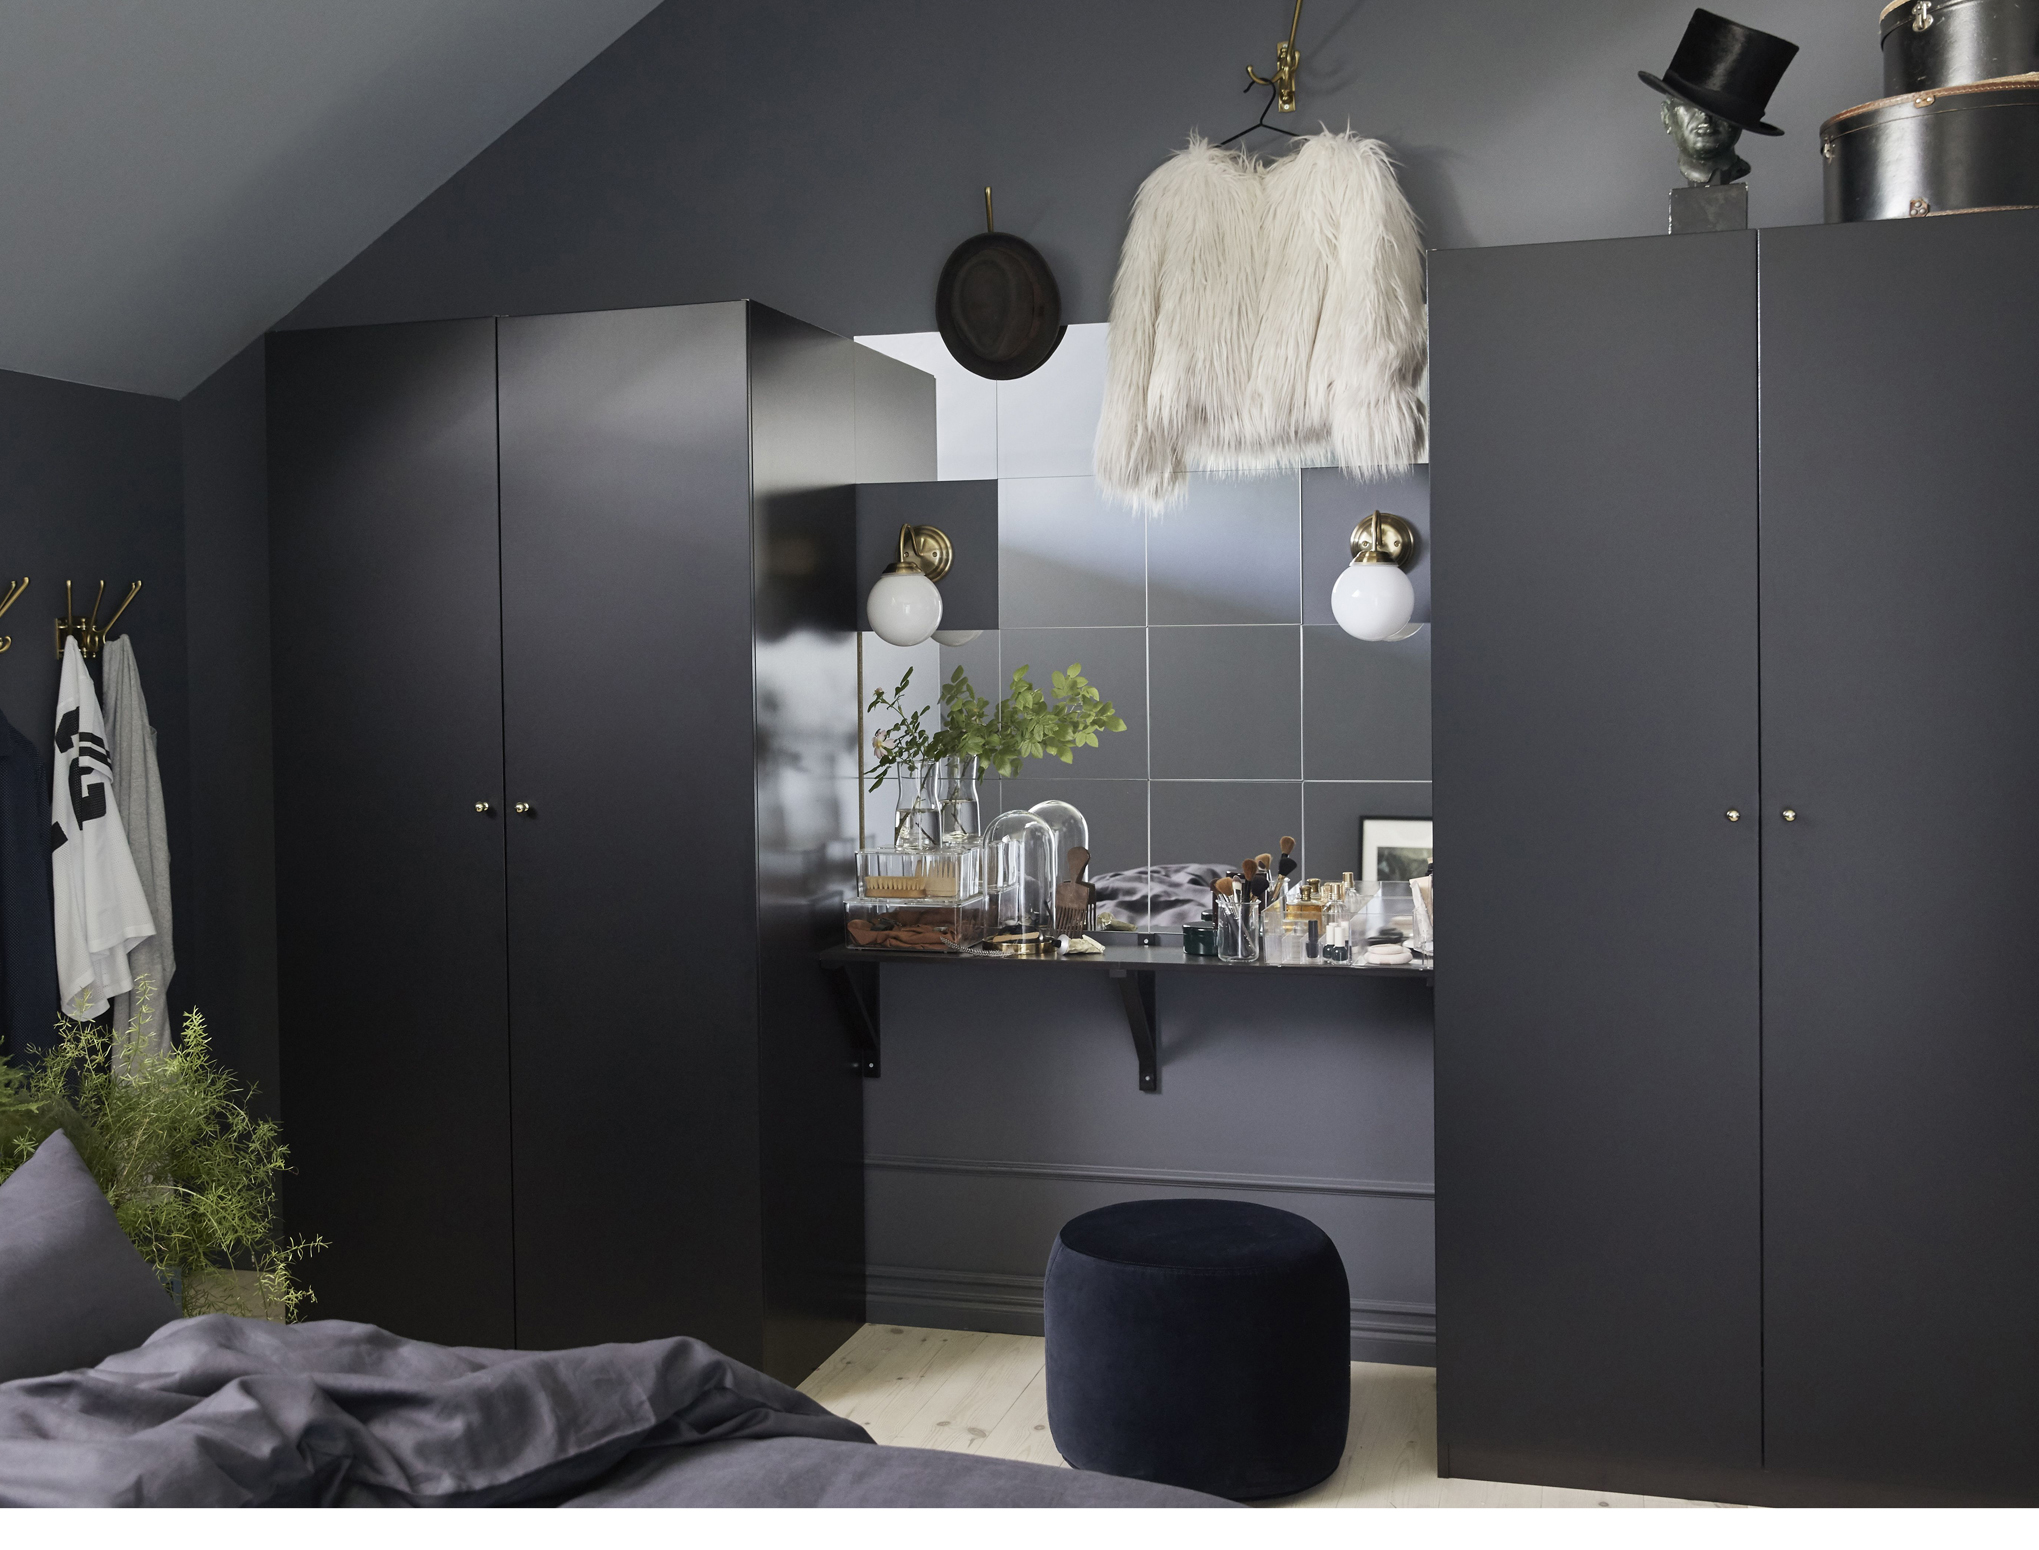 Ekby Valter/Ekby Hemnes Wall Shelf, £16; Lots Mirror, £4.99 for pack of four; Pax Wardrobe, £130, and Lillholmen Wall Lamp, £12, Ikea